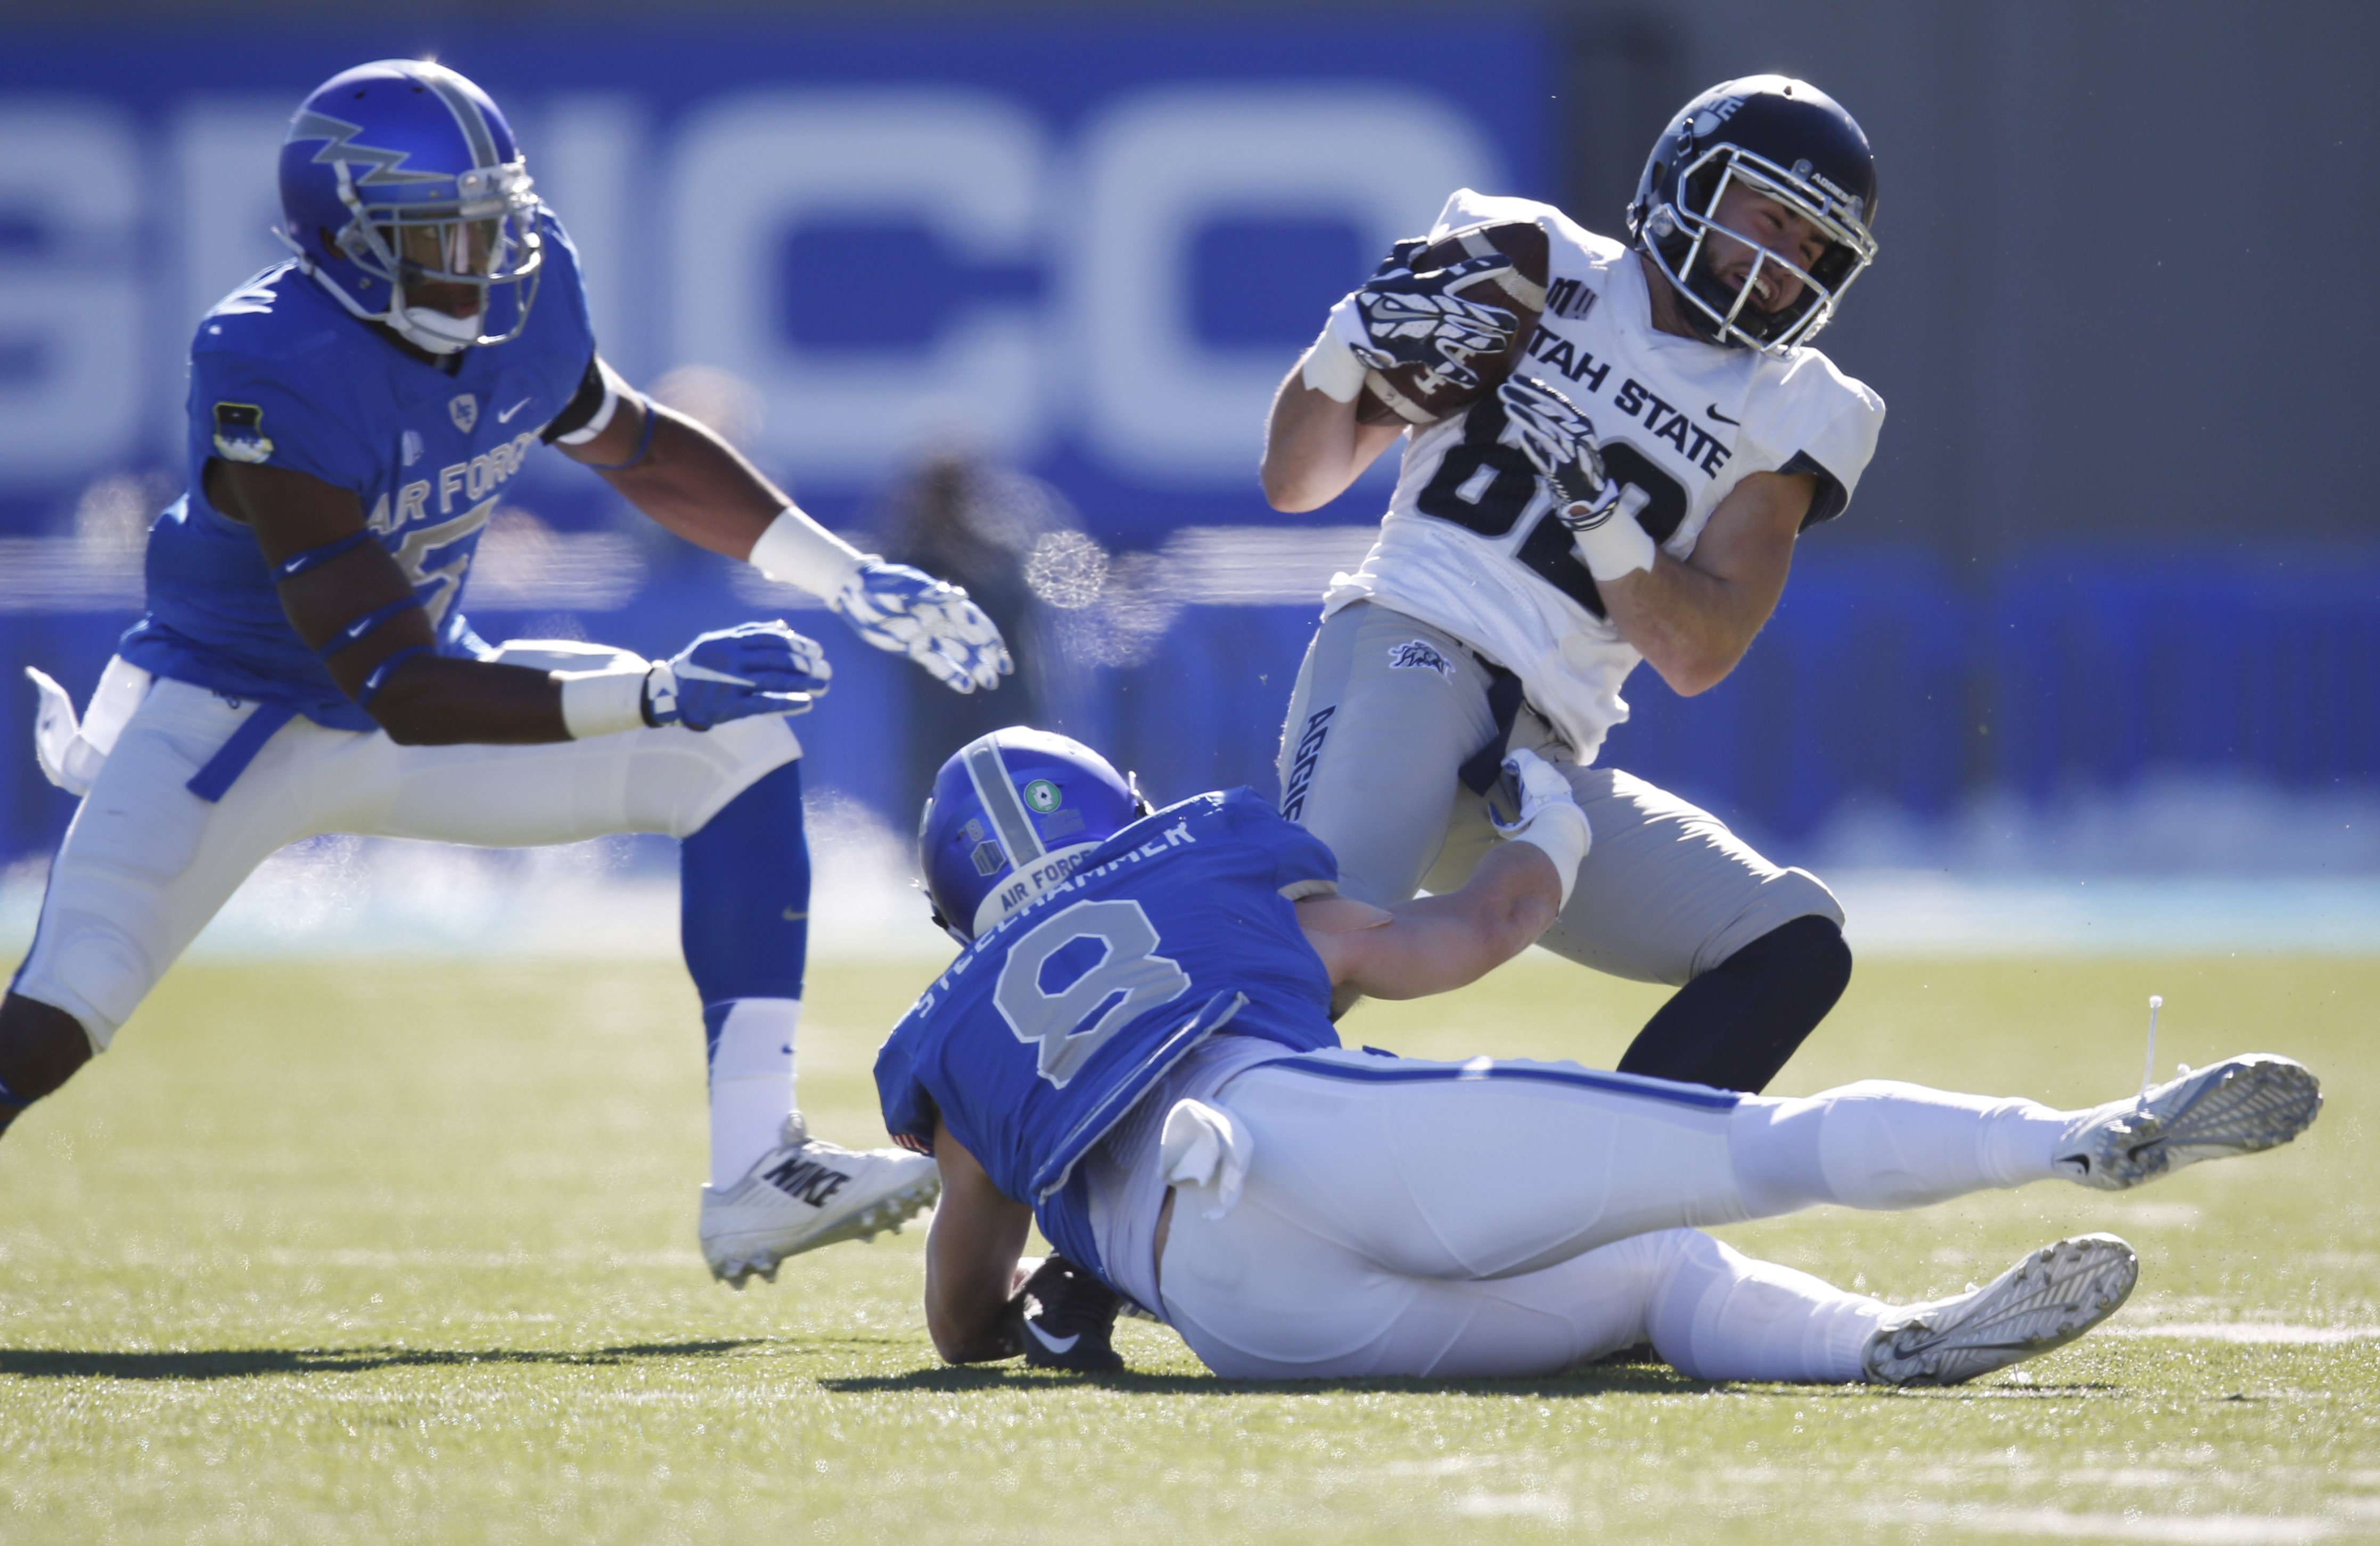 Utah State wide receiver Andrew Rodriguez, back right, is tackled after pulling in a pass by Air Force linebacker Dexter Walker , left, and defensive back Weston Steelhammer in the first half of an NCAA college football game Saturday, Nov. 14, 2015, at Ai